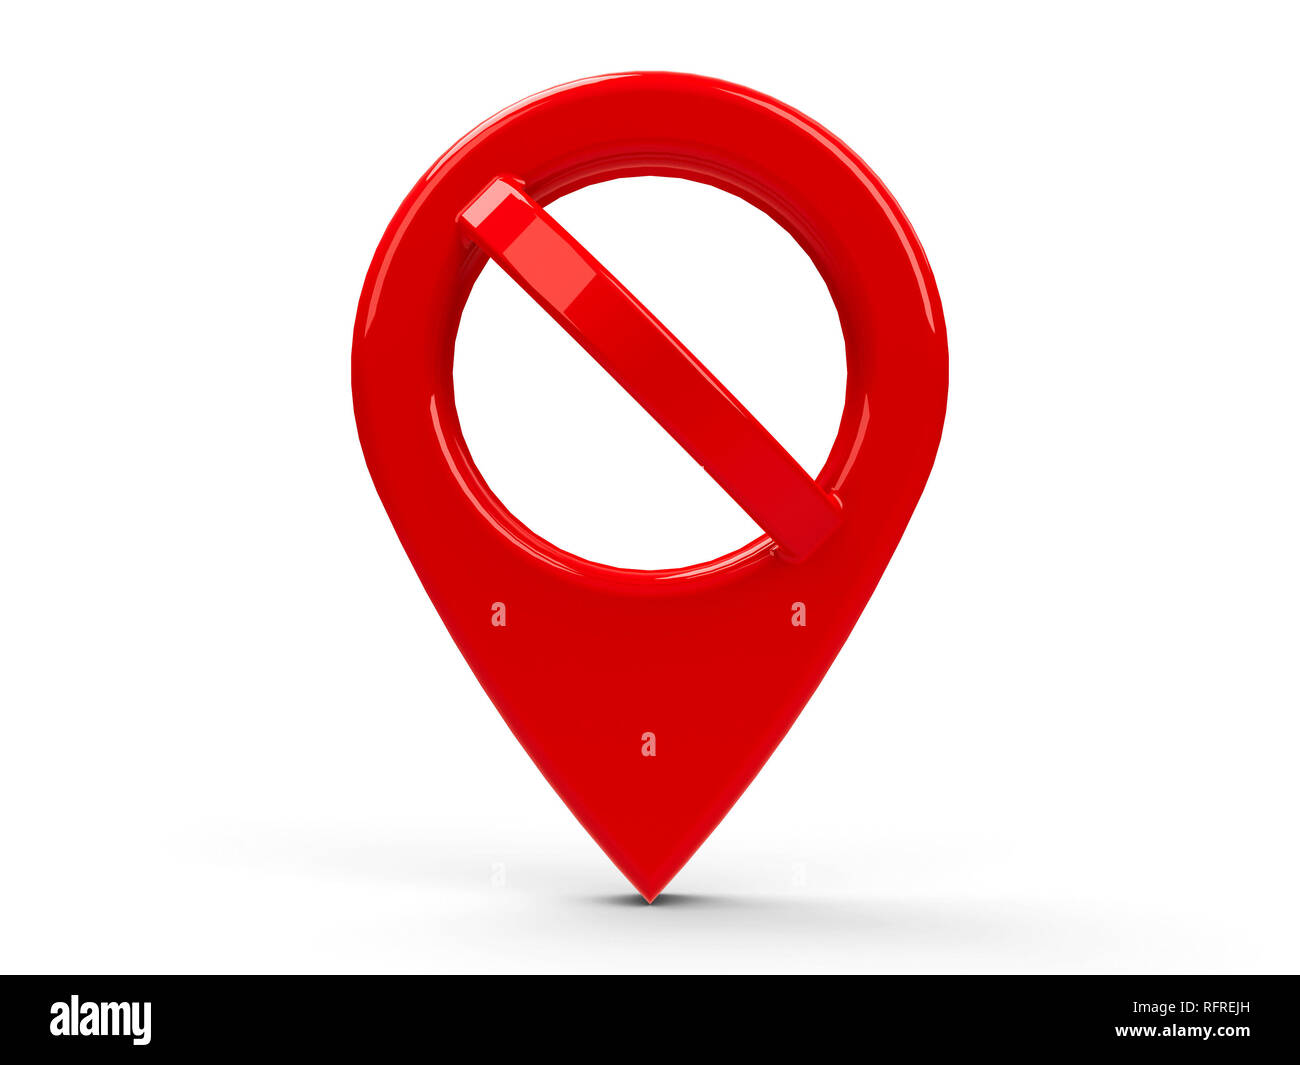 Red map pointer with No sign isolated on white background, three-dimensional rendering, 3D illustration - Stock Image